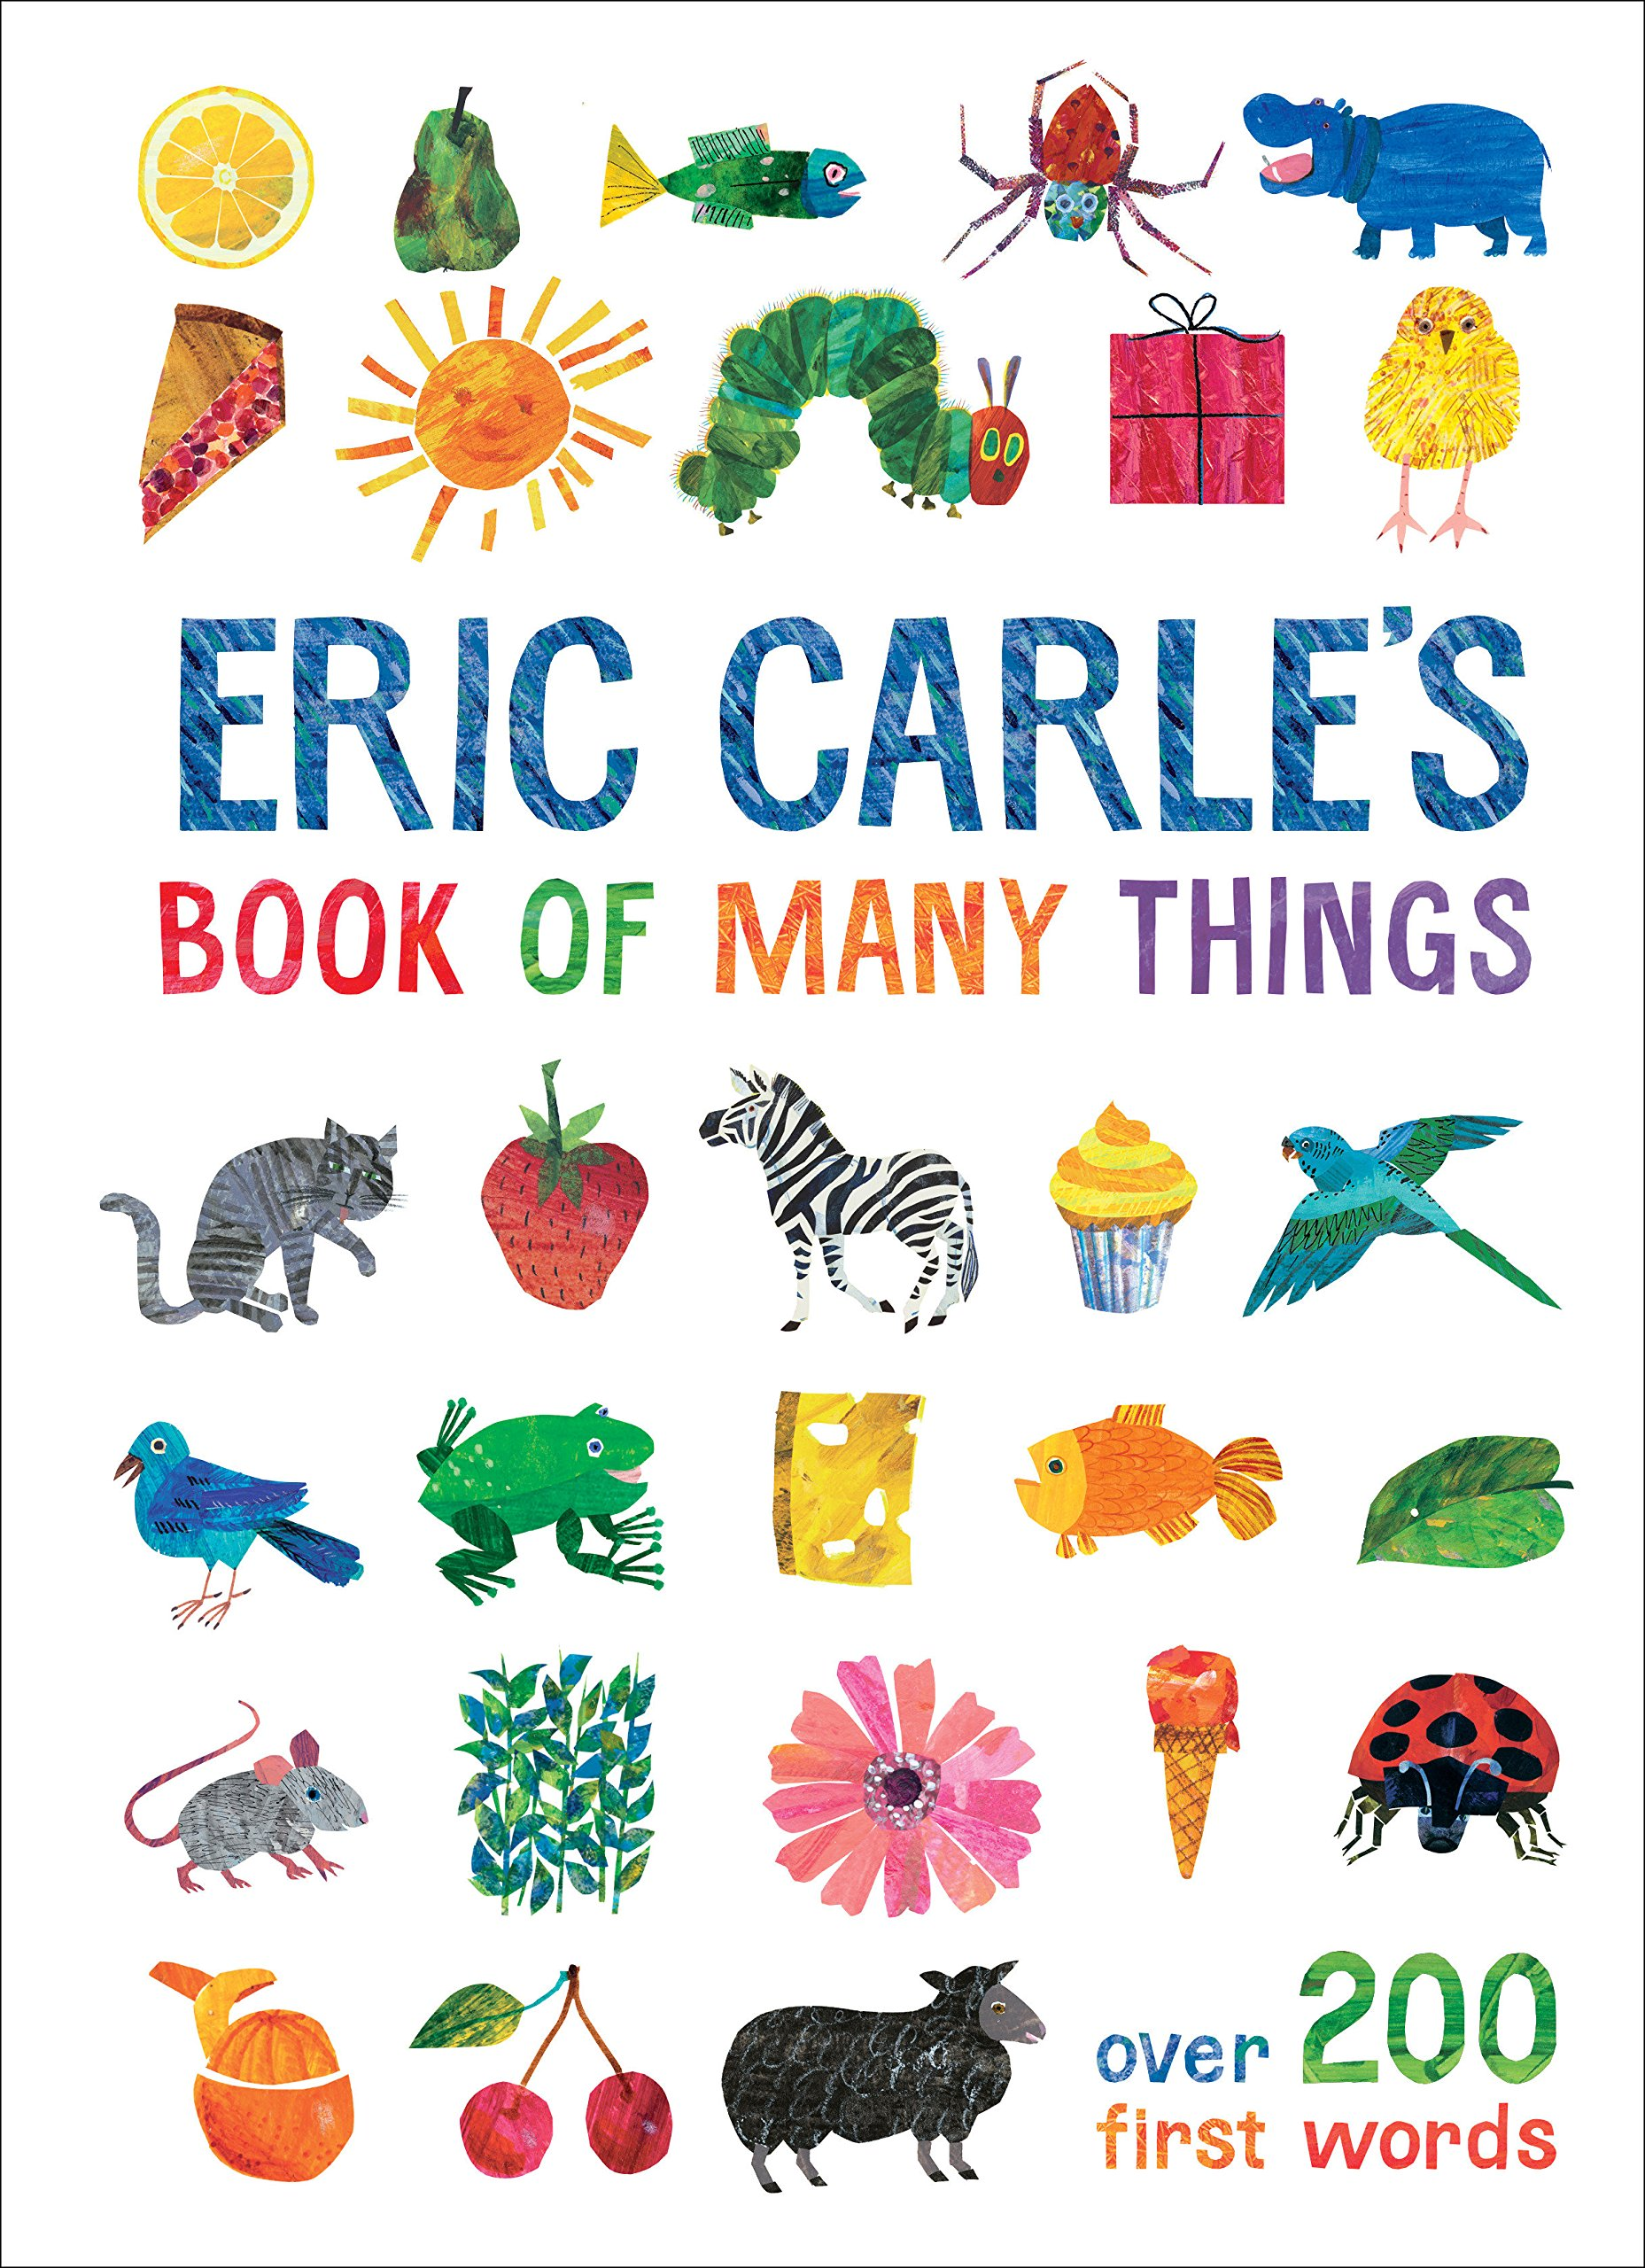 40cf8a5e0 Amazon.com: Eric Carle's Book of Many Things (The World of Eric ...